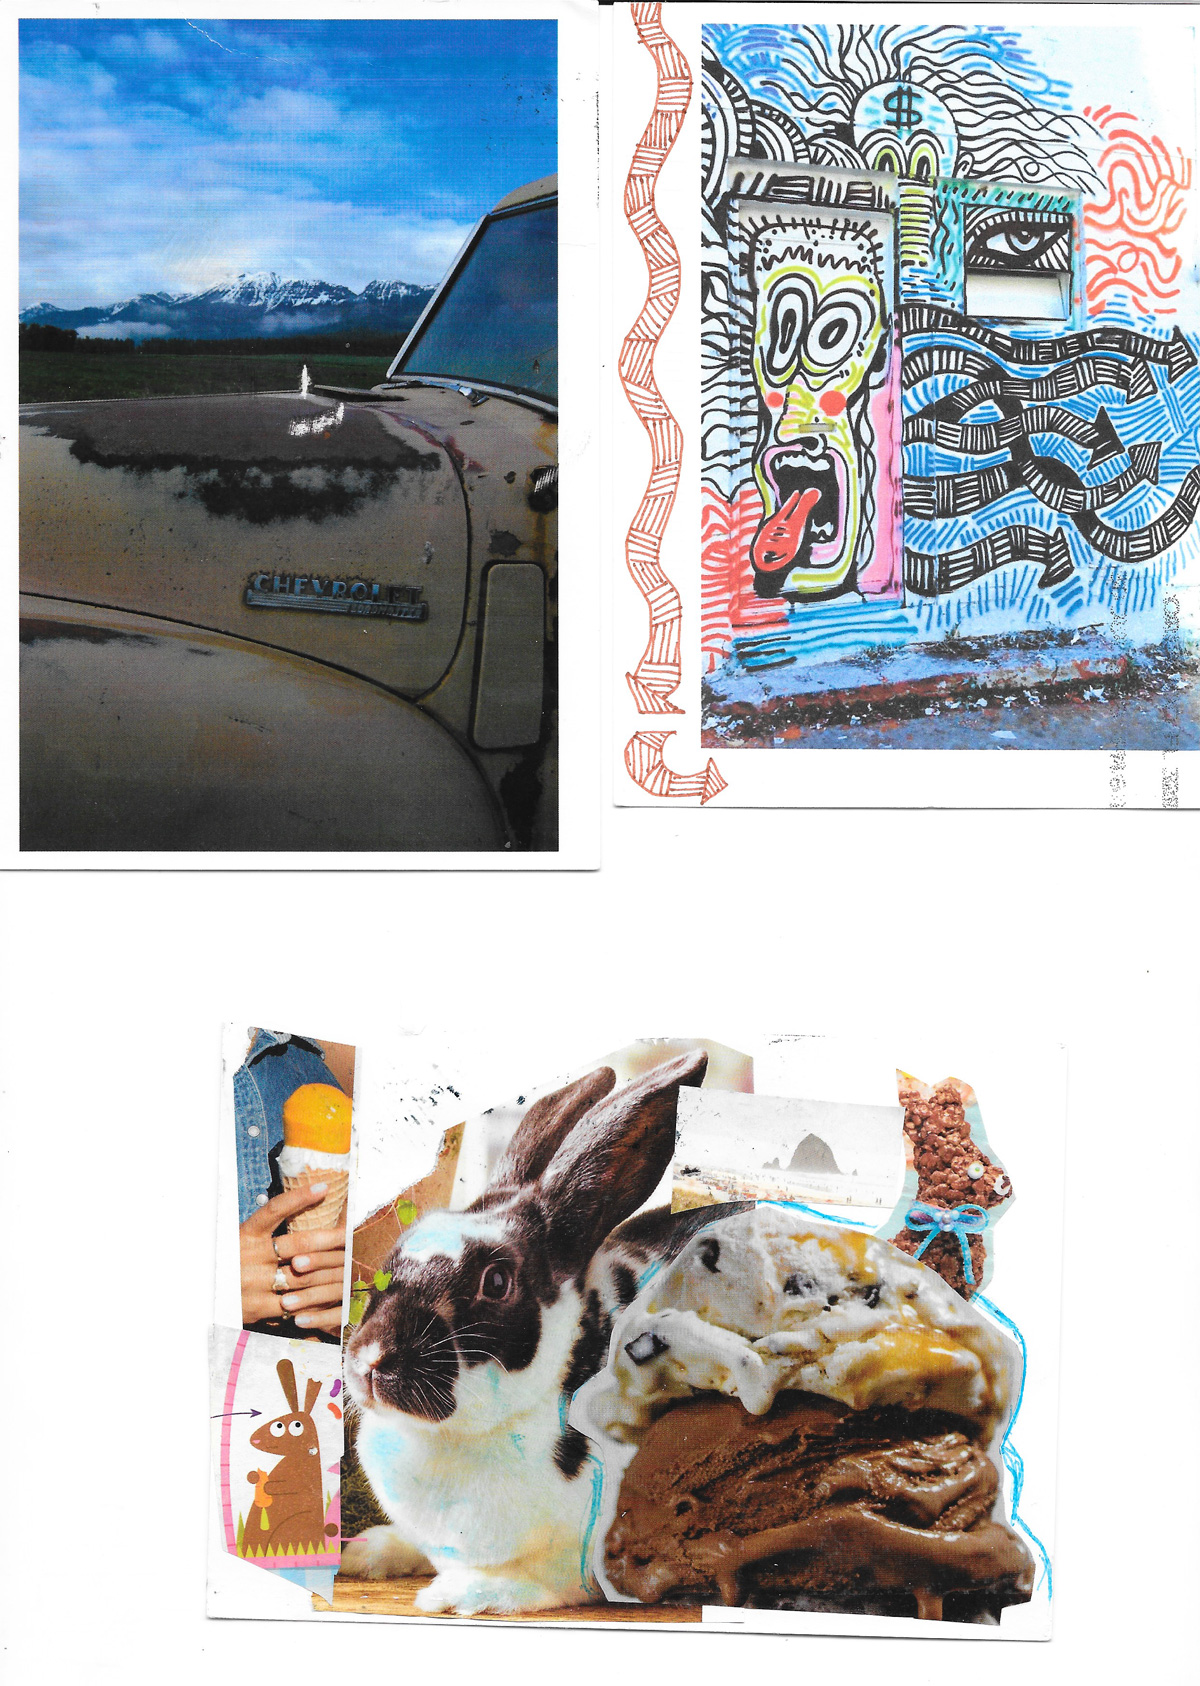 postcards with an old truck, graffiti art, and rabbits near ice cream